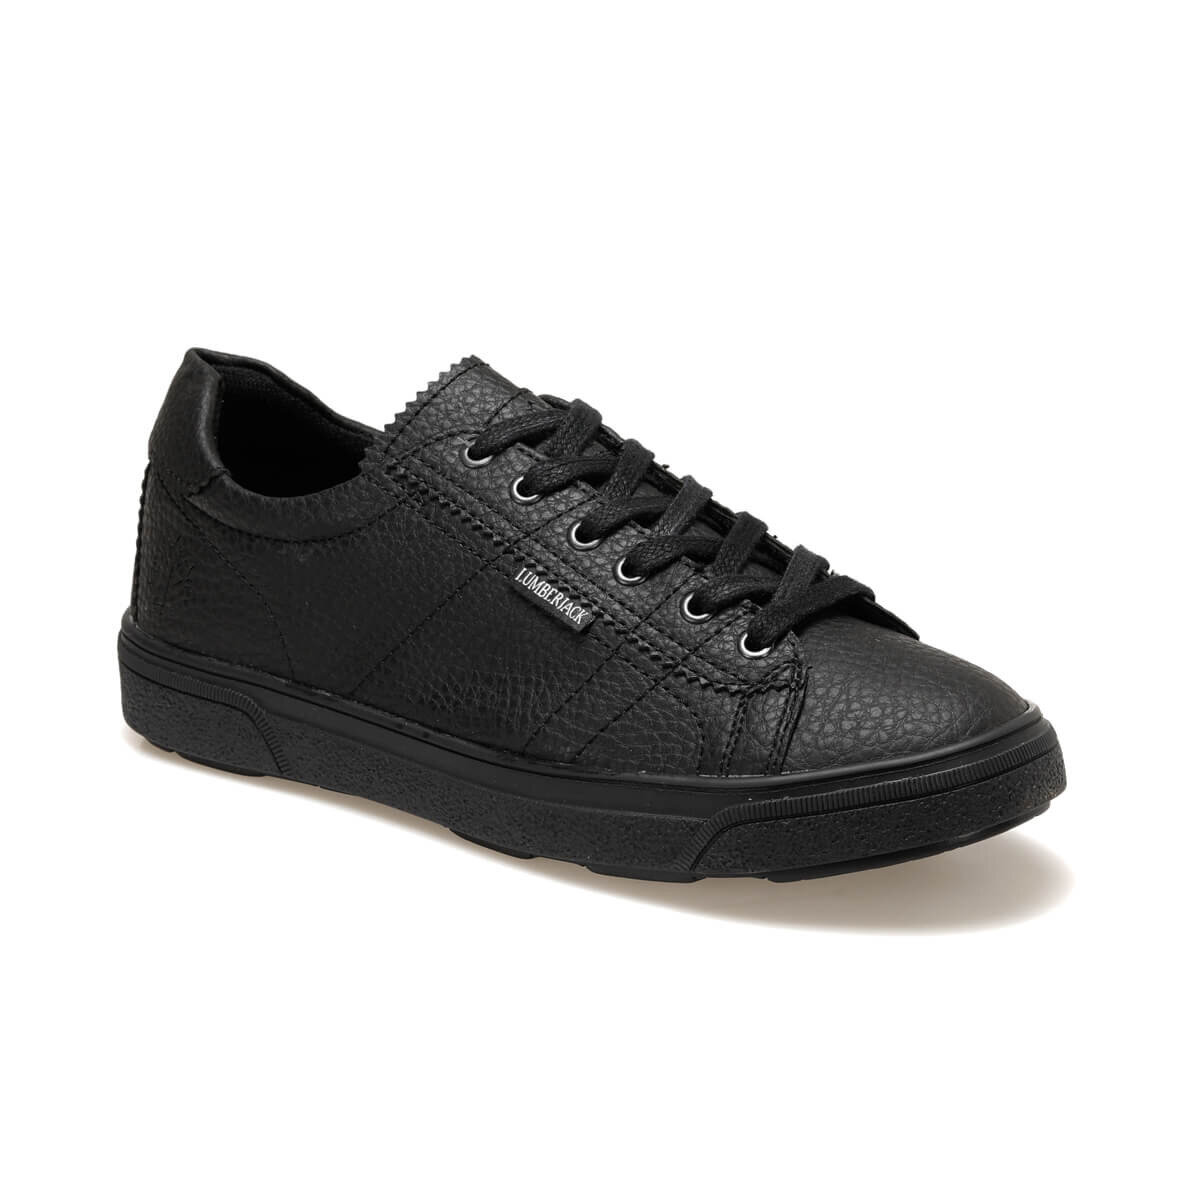 flo-busia-9pr-black-men-'s-sneaker-shoes-lumberjack